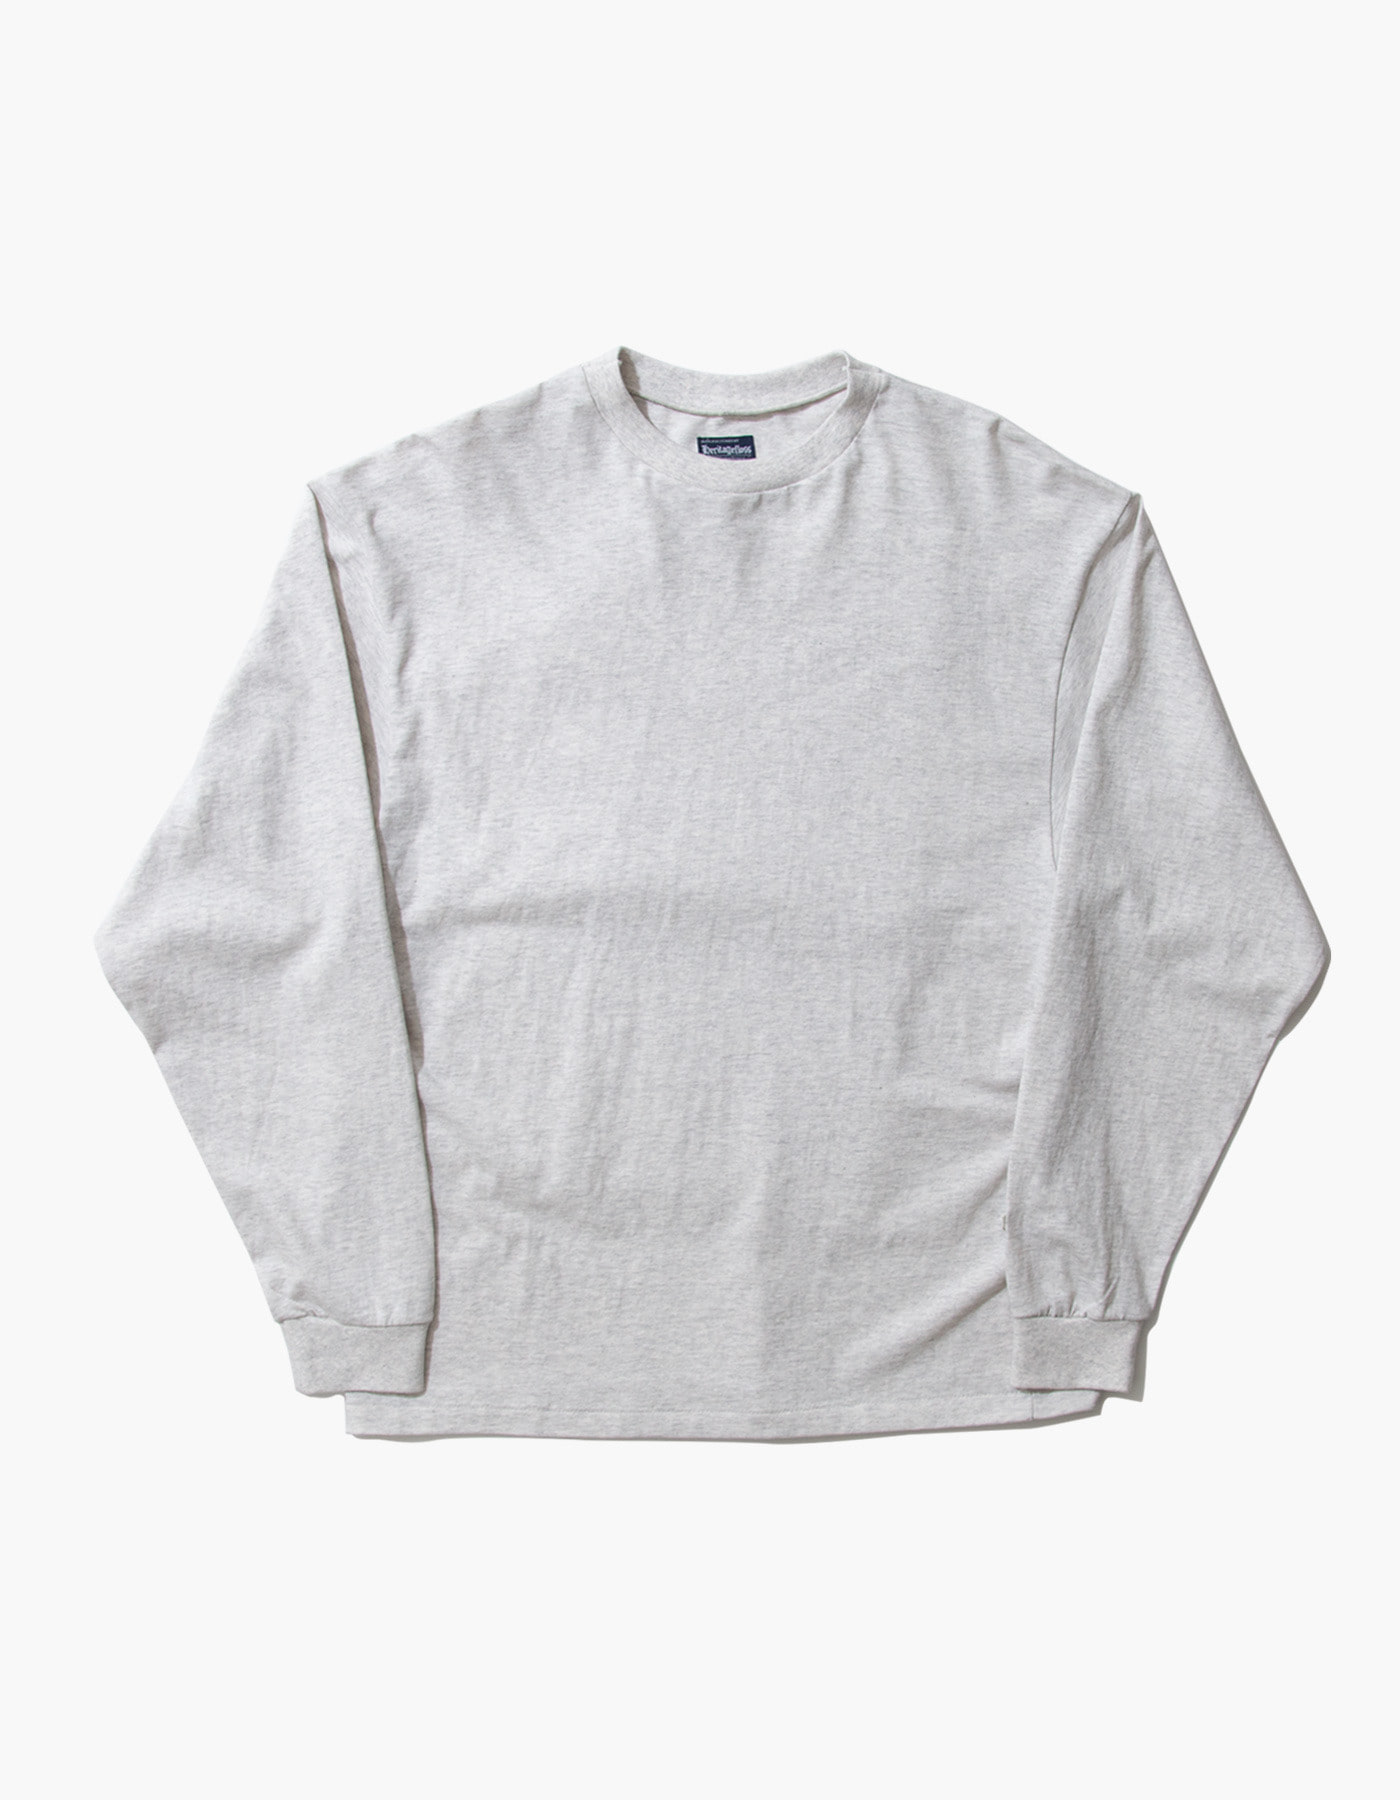 ACS COMPACT YARN LONG SLEEVE / M.GREY(1%)